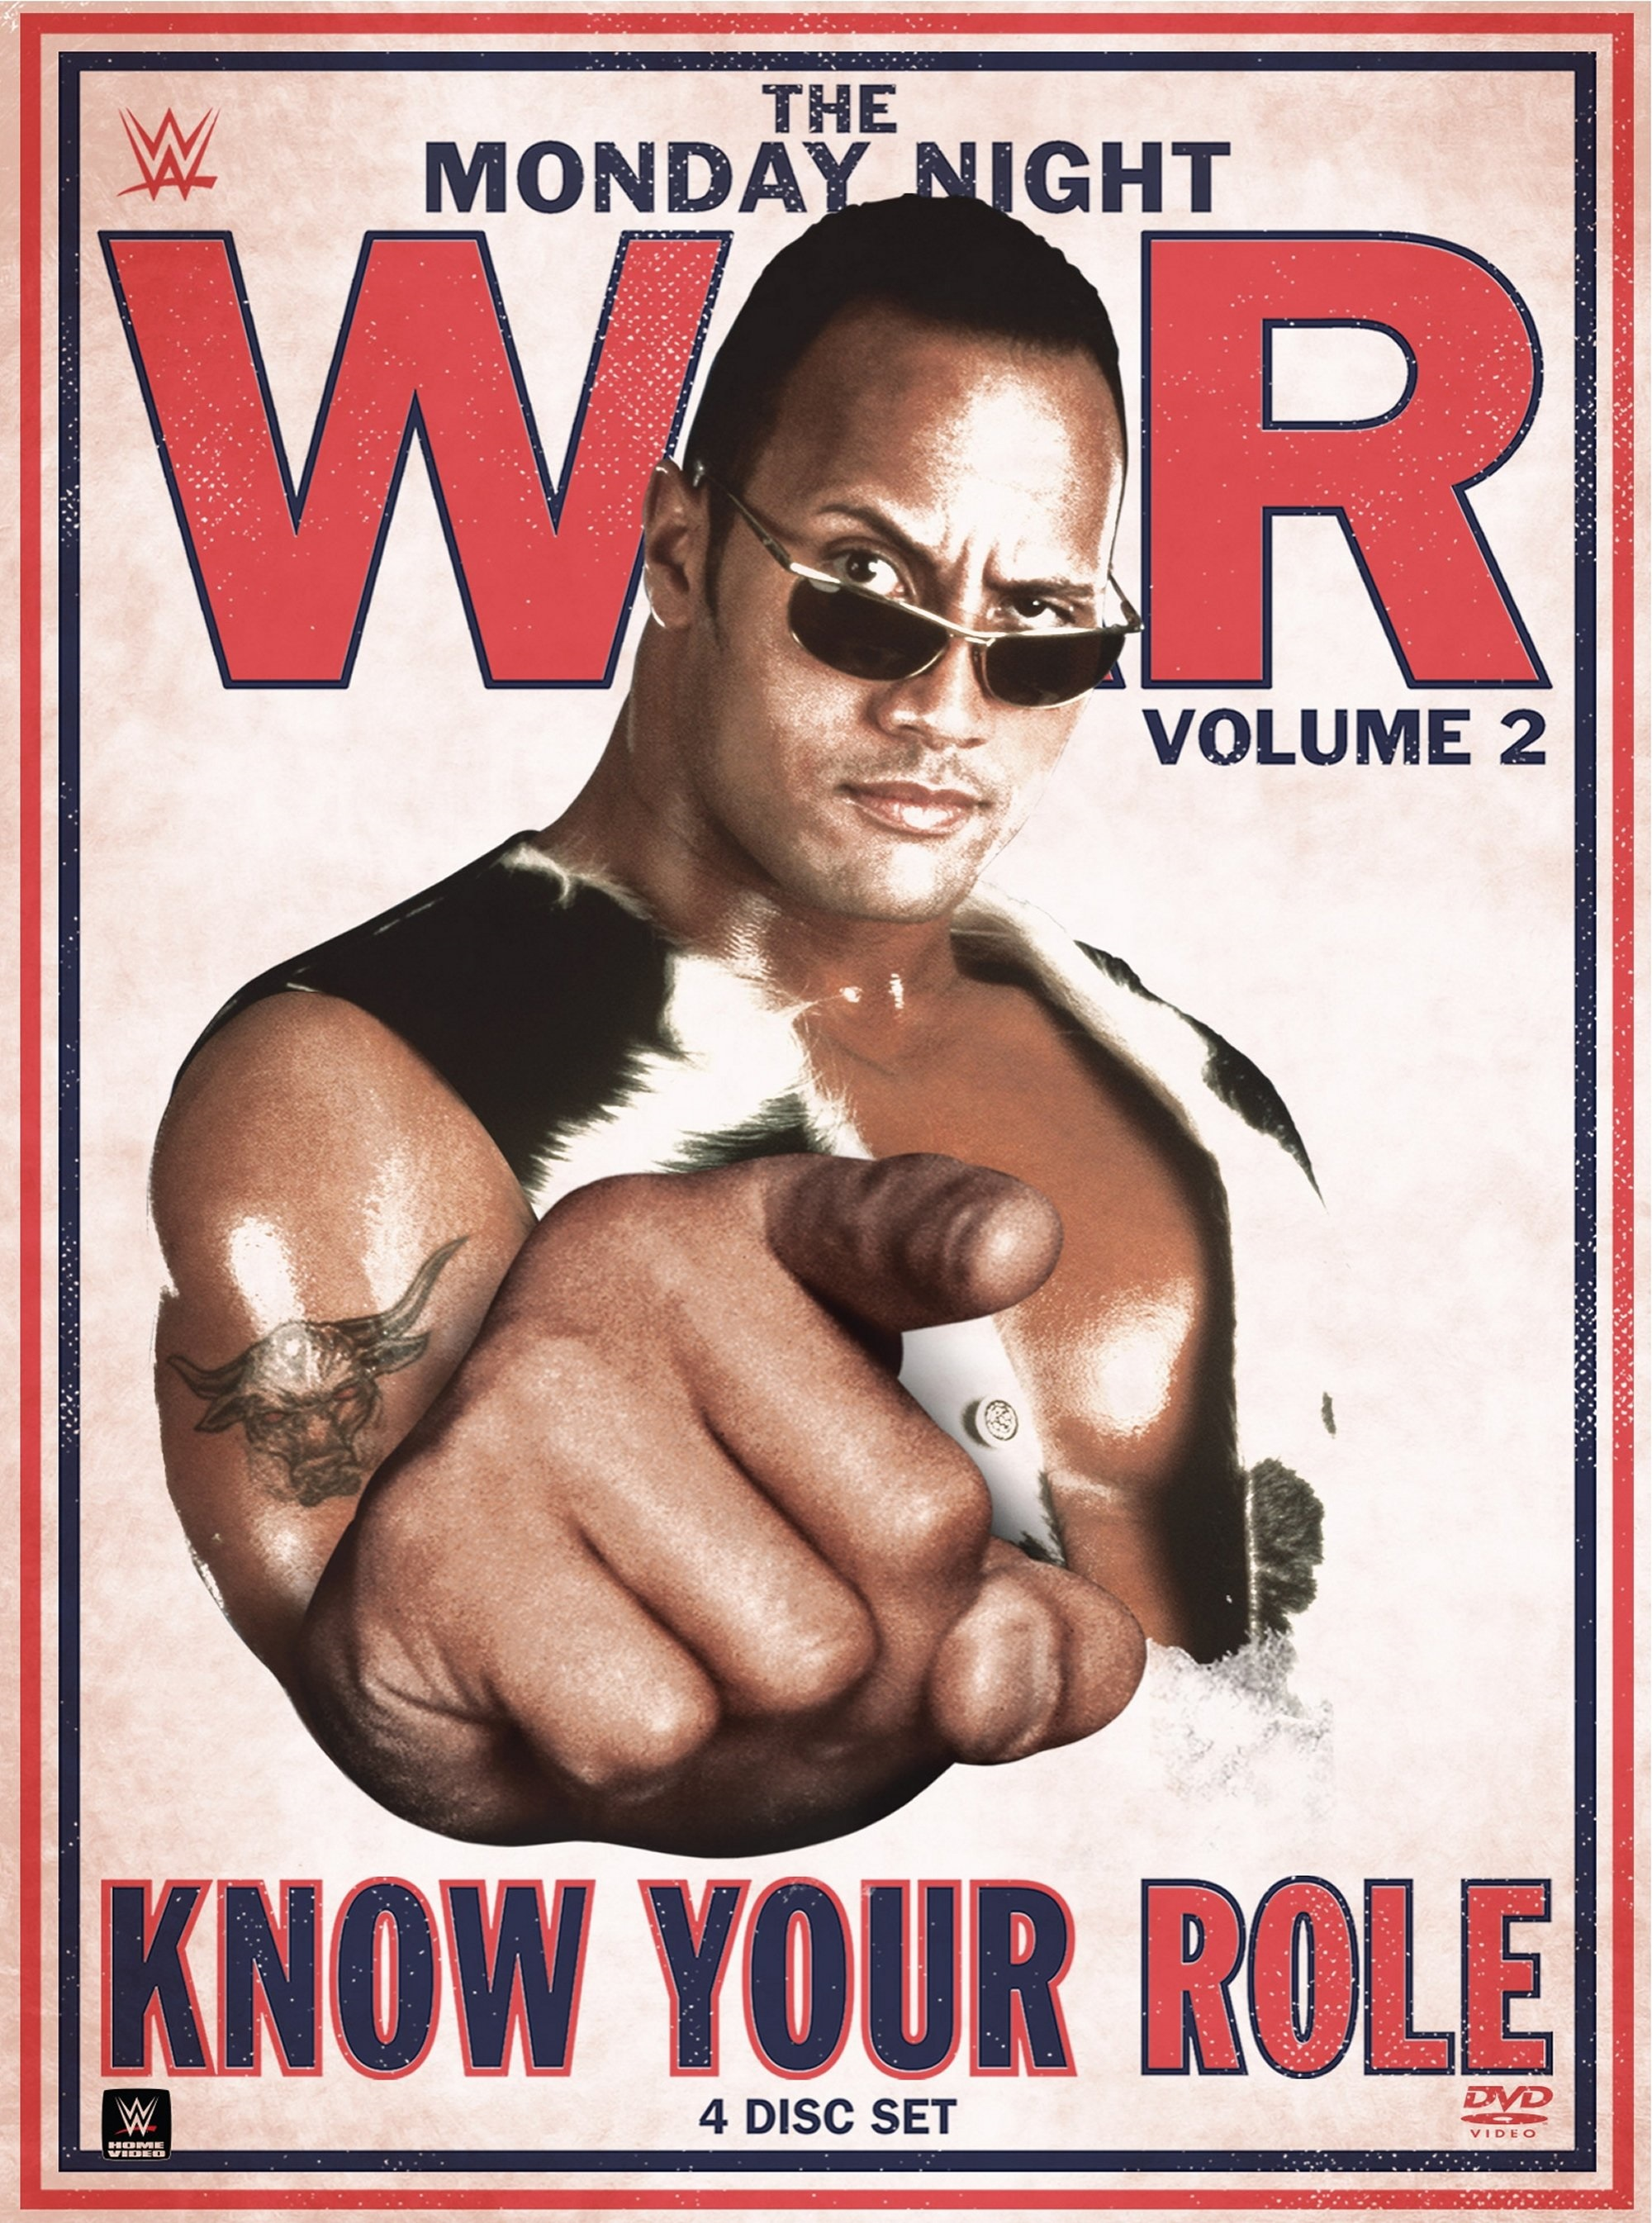 WWE: Monday Night War, Vol. 2 - Know Your Role